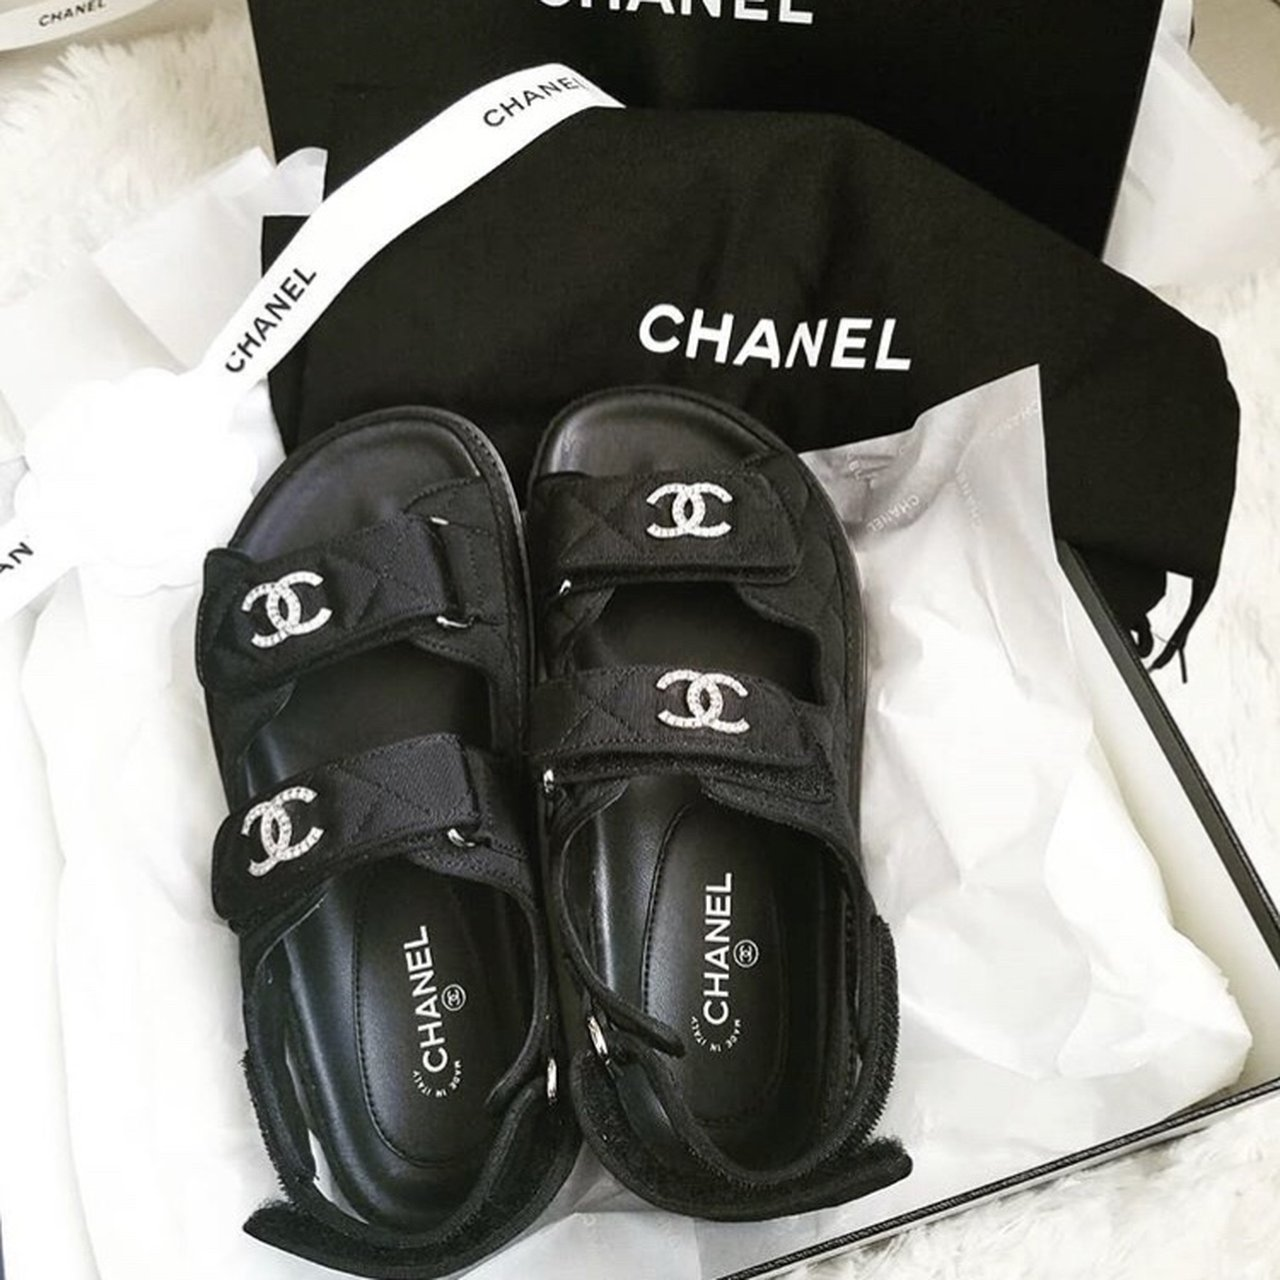 Chanel Sandal From The 2019 Collection Comes Brand Depop